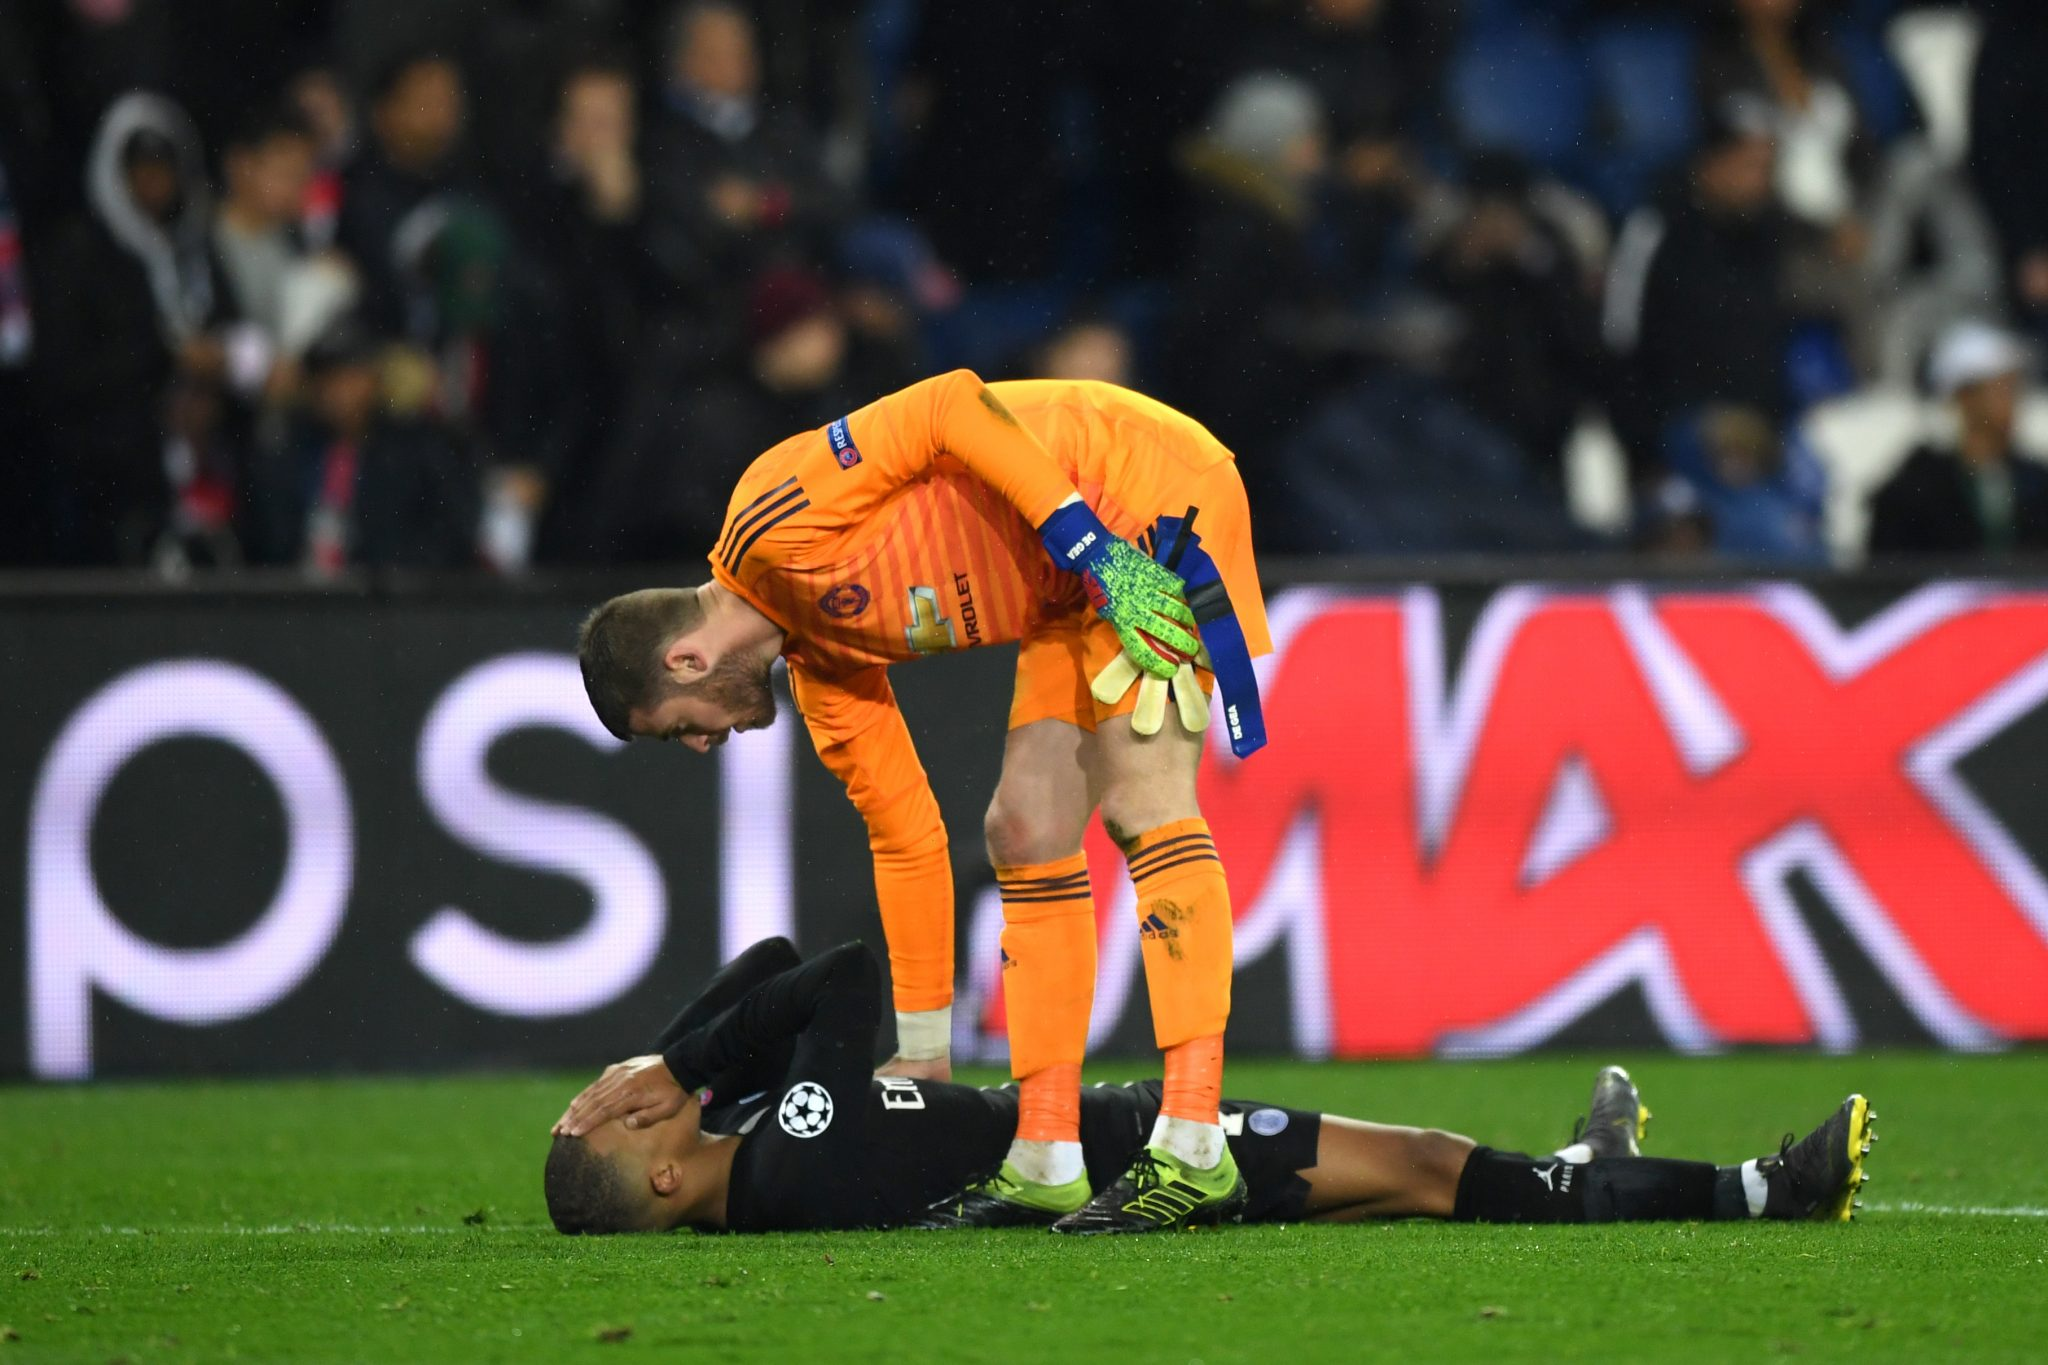 Camp Nou collapse, stunned by Man United - Recalling PSG's Champions League woes